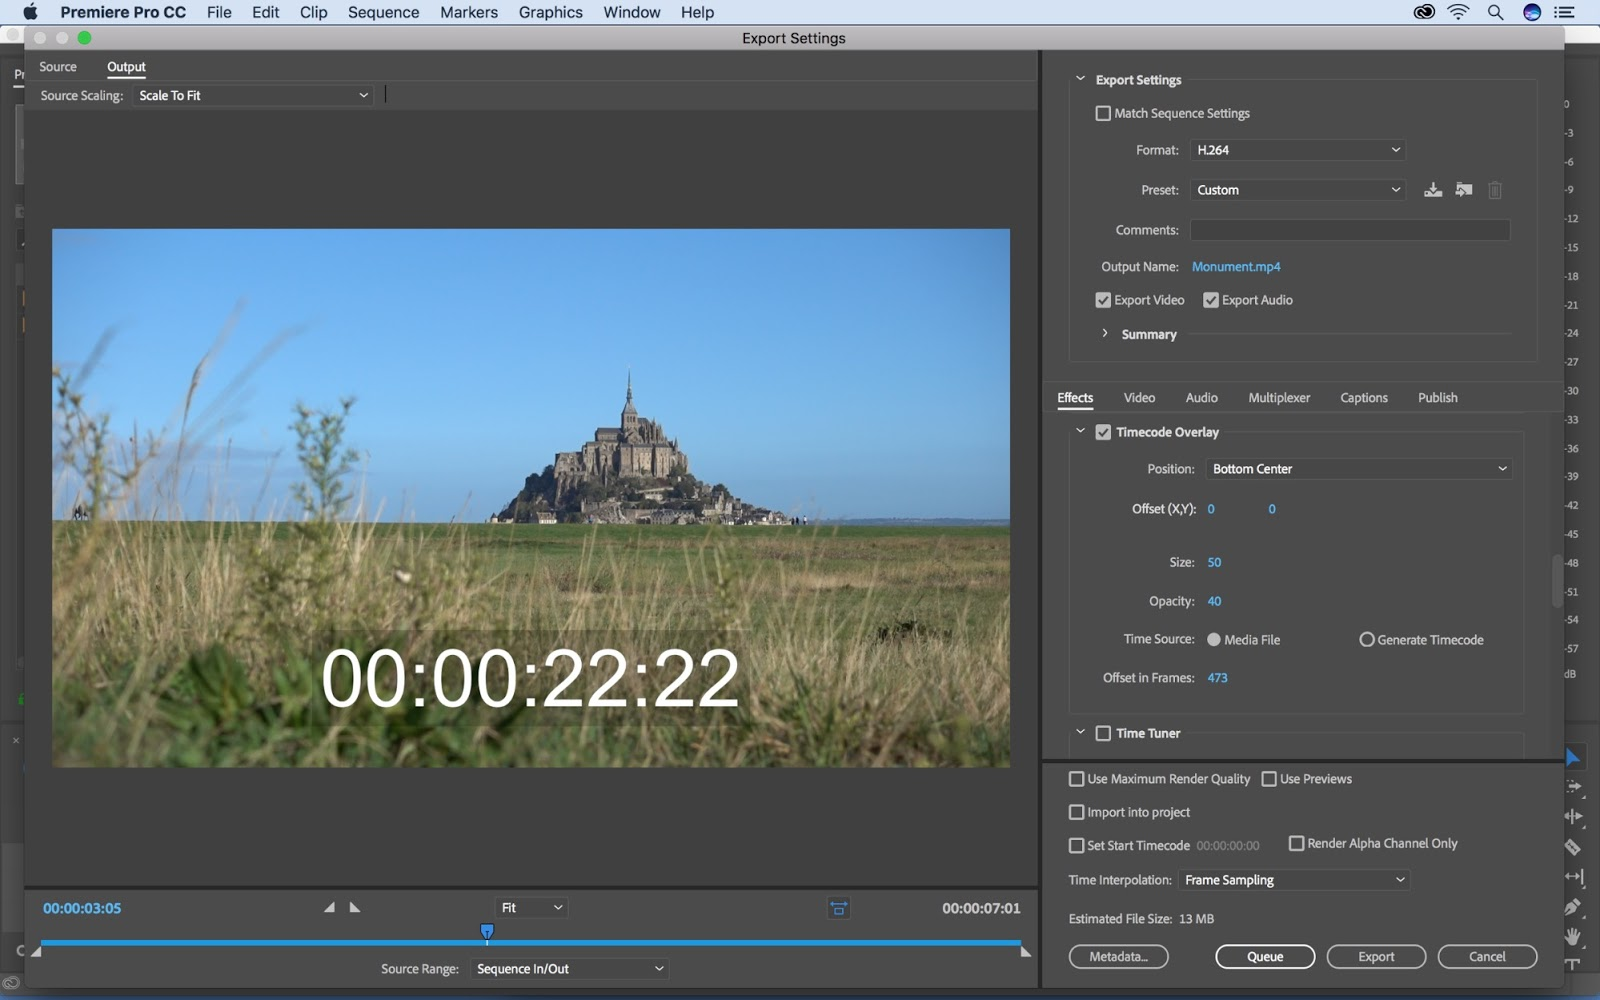 Adding a timecode overlay in Premiere Pro